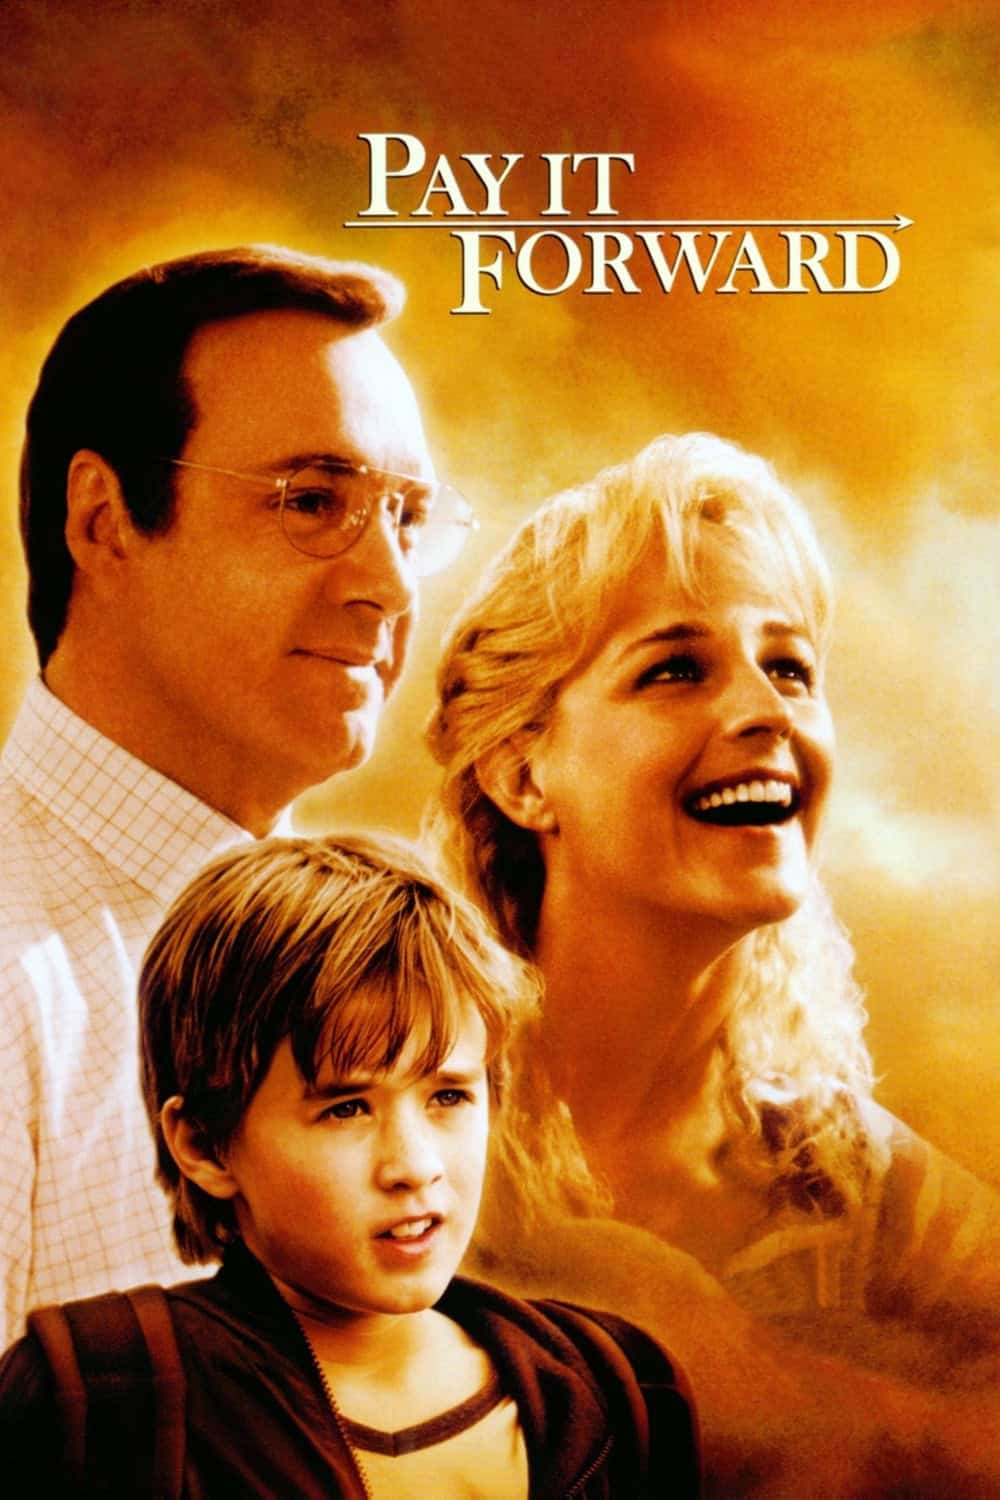 Pay It Forward, 2000